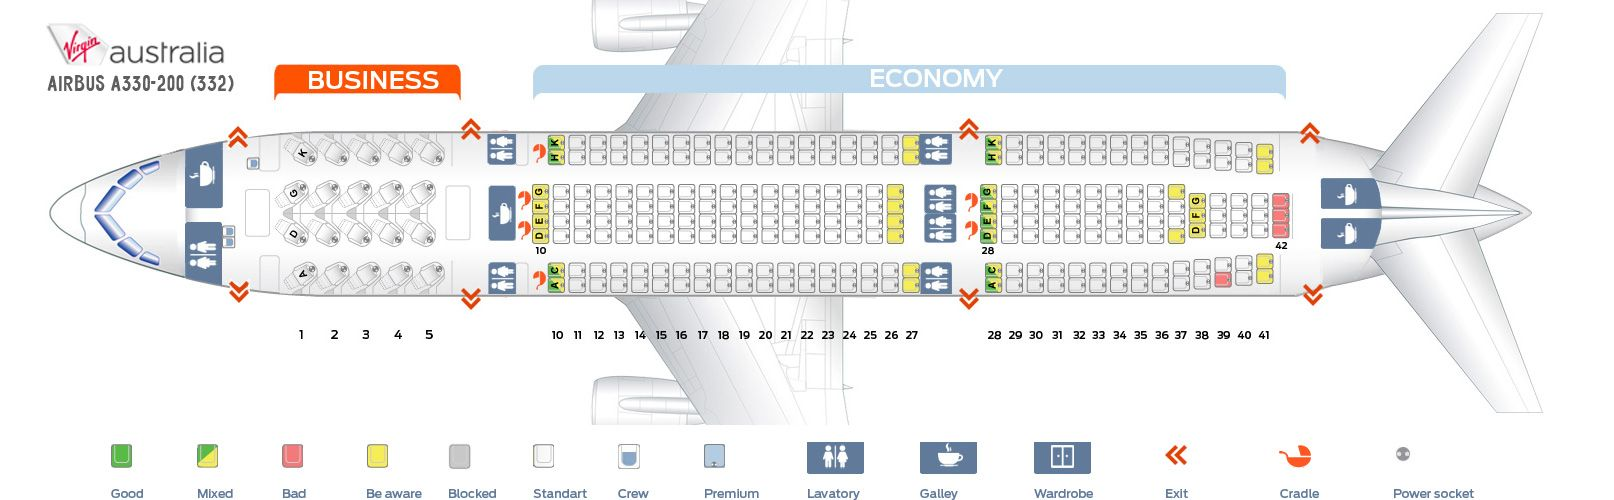 airbus a330 200 seat map Virgin Australia Fleet Airbus A330 200 Details And Pictures airbus a330 200 seat map